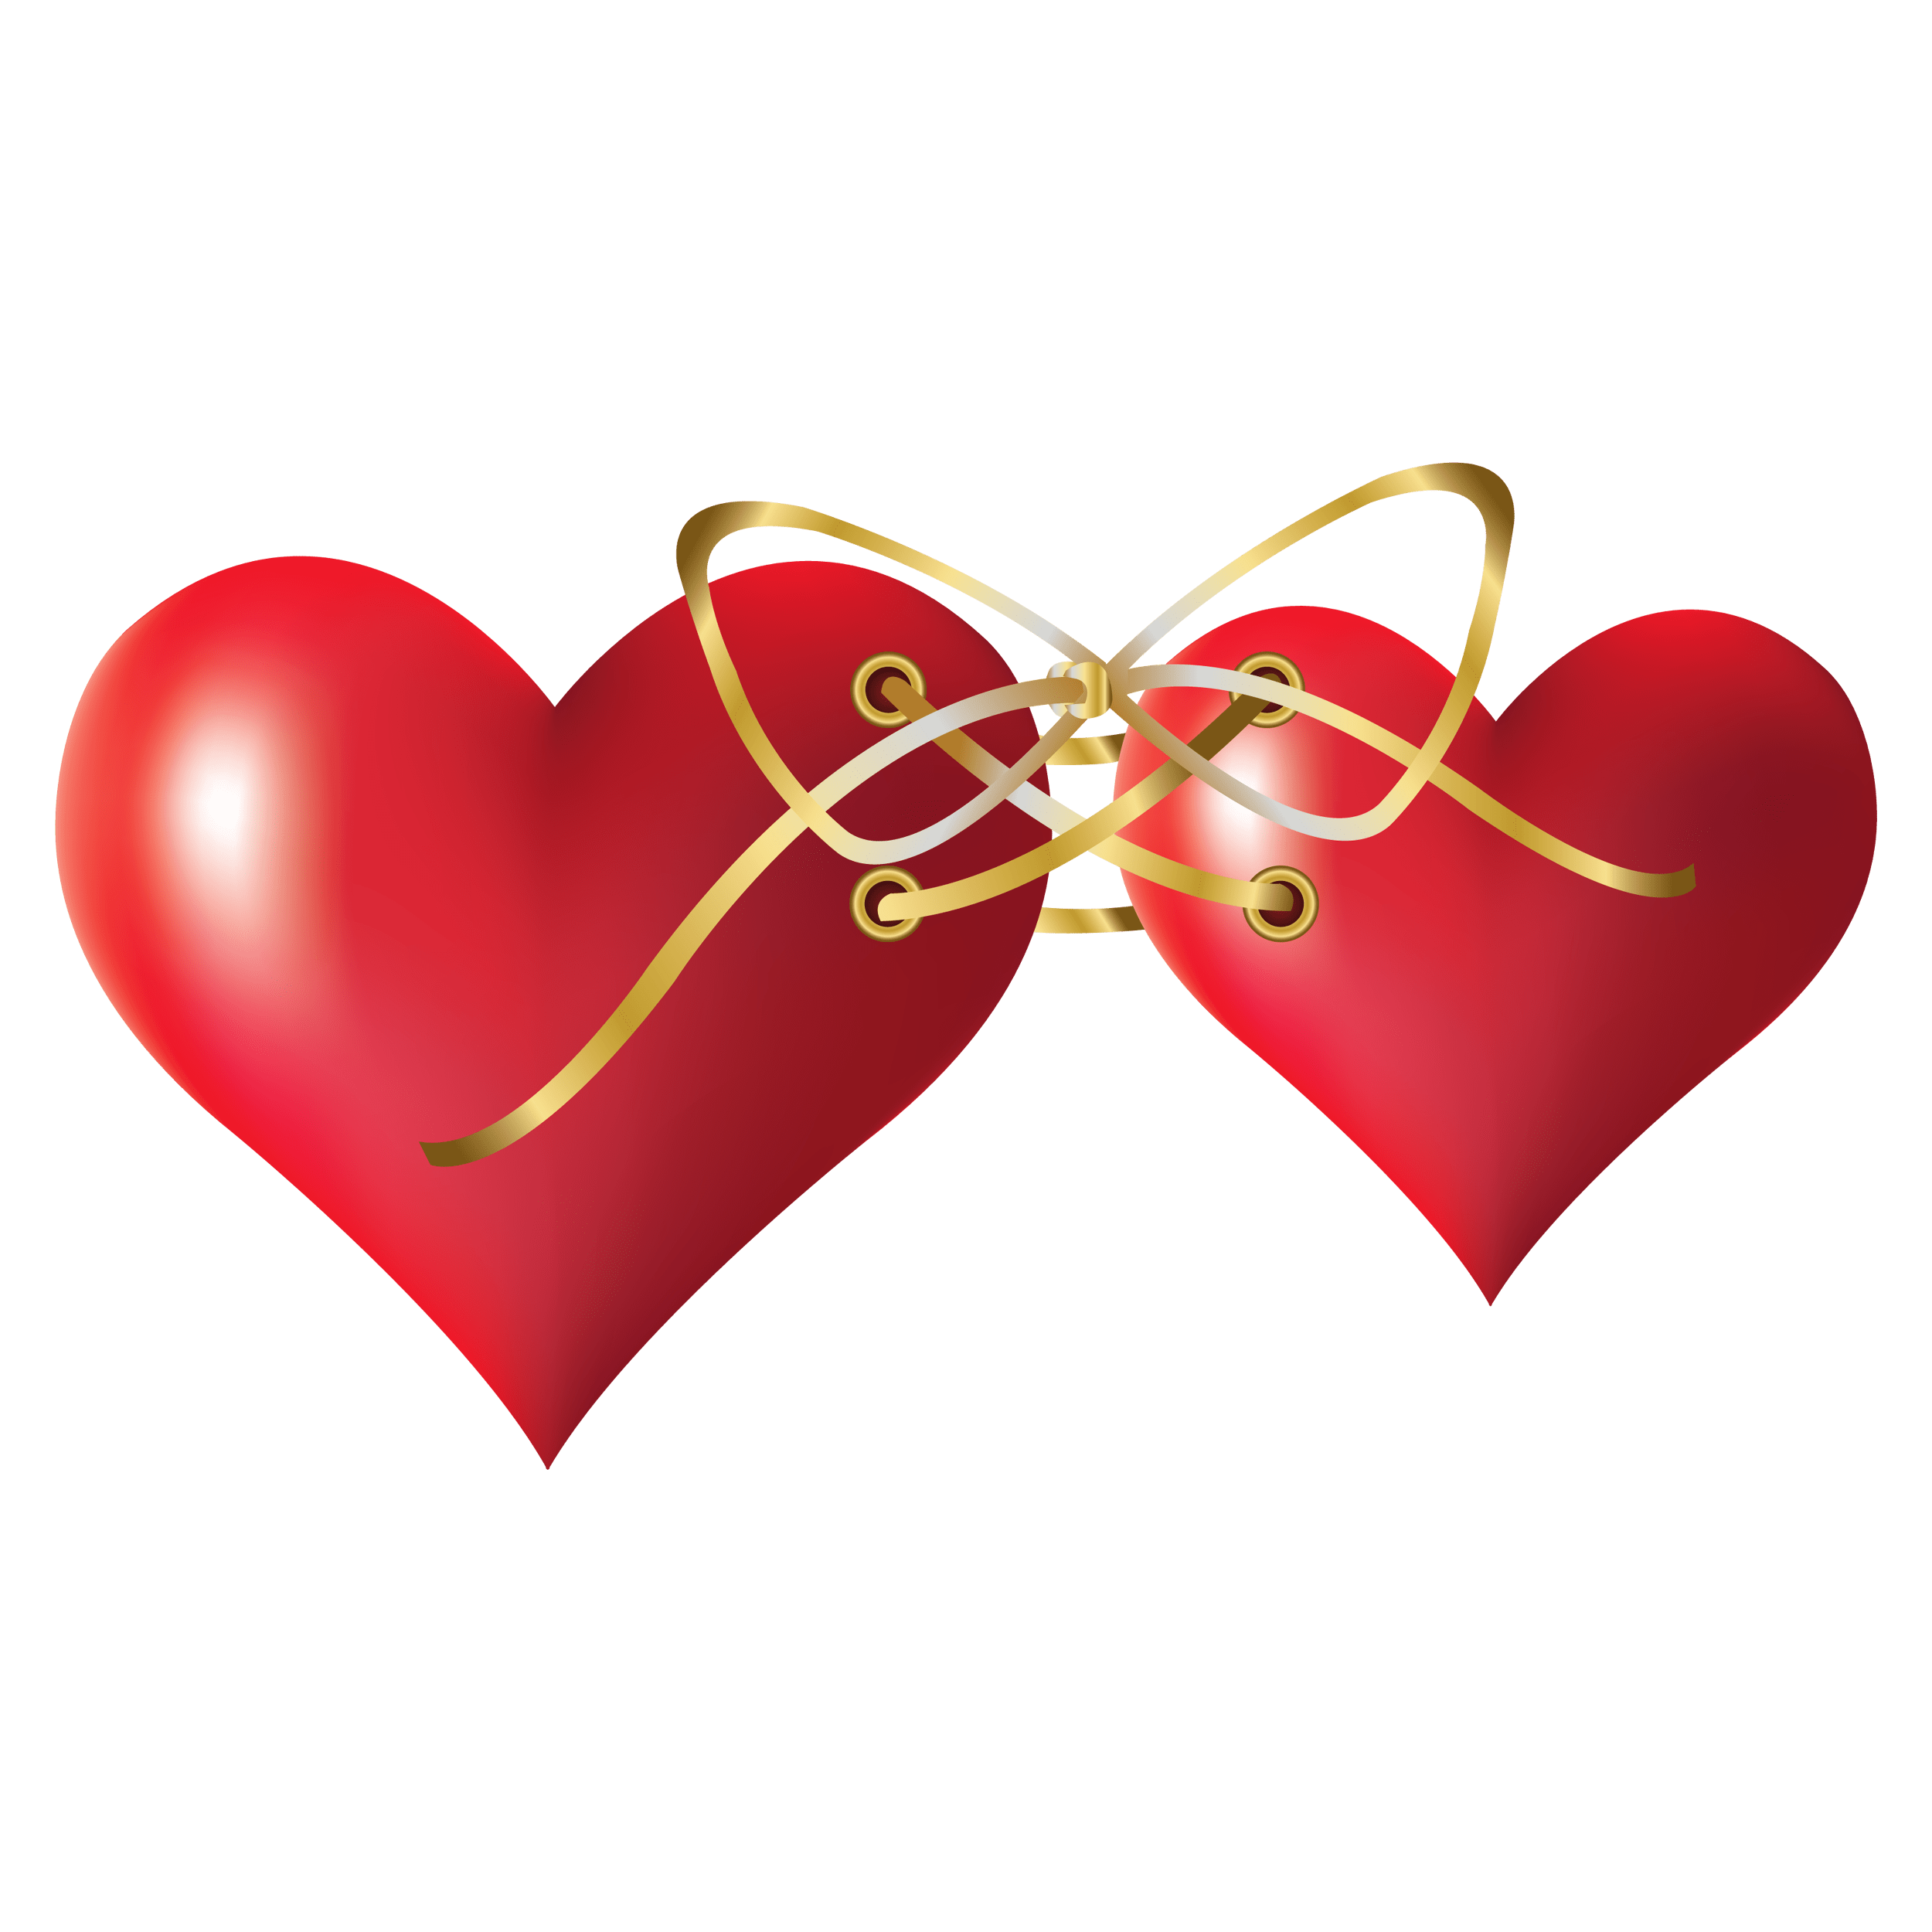 Two Tied Hearts Transparent Picture